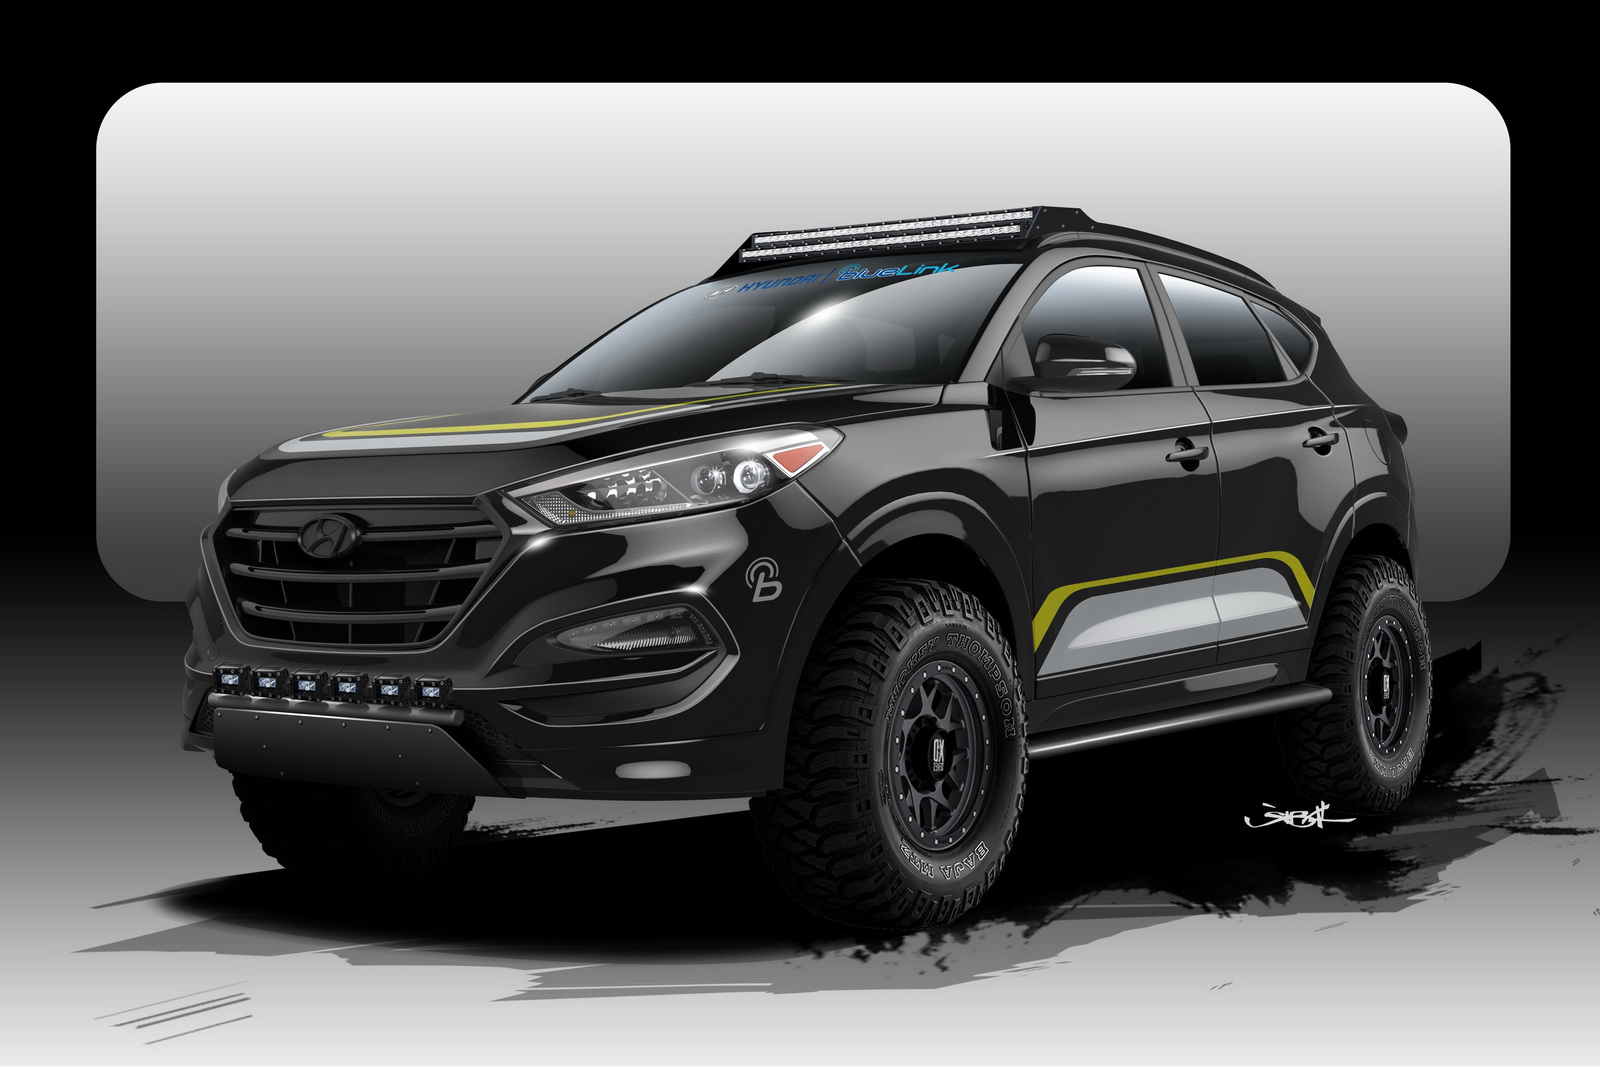 hyundai tucson goes to sema the off road way autoevolution. Black Bedroom Furniture Sets. Home Design Ideas